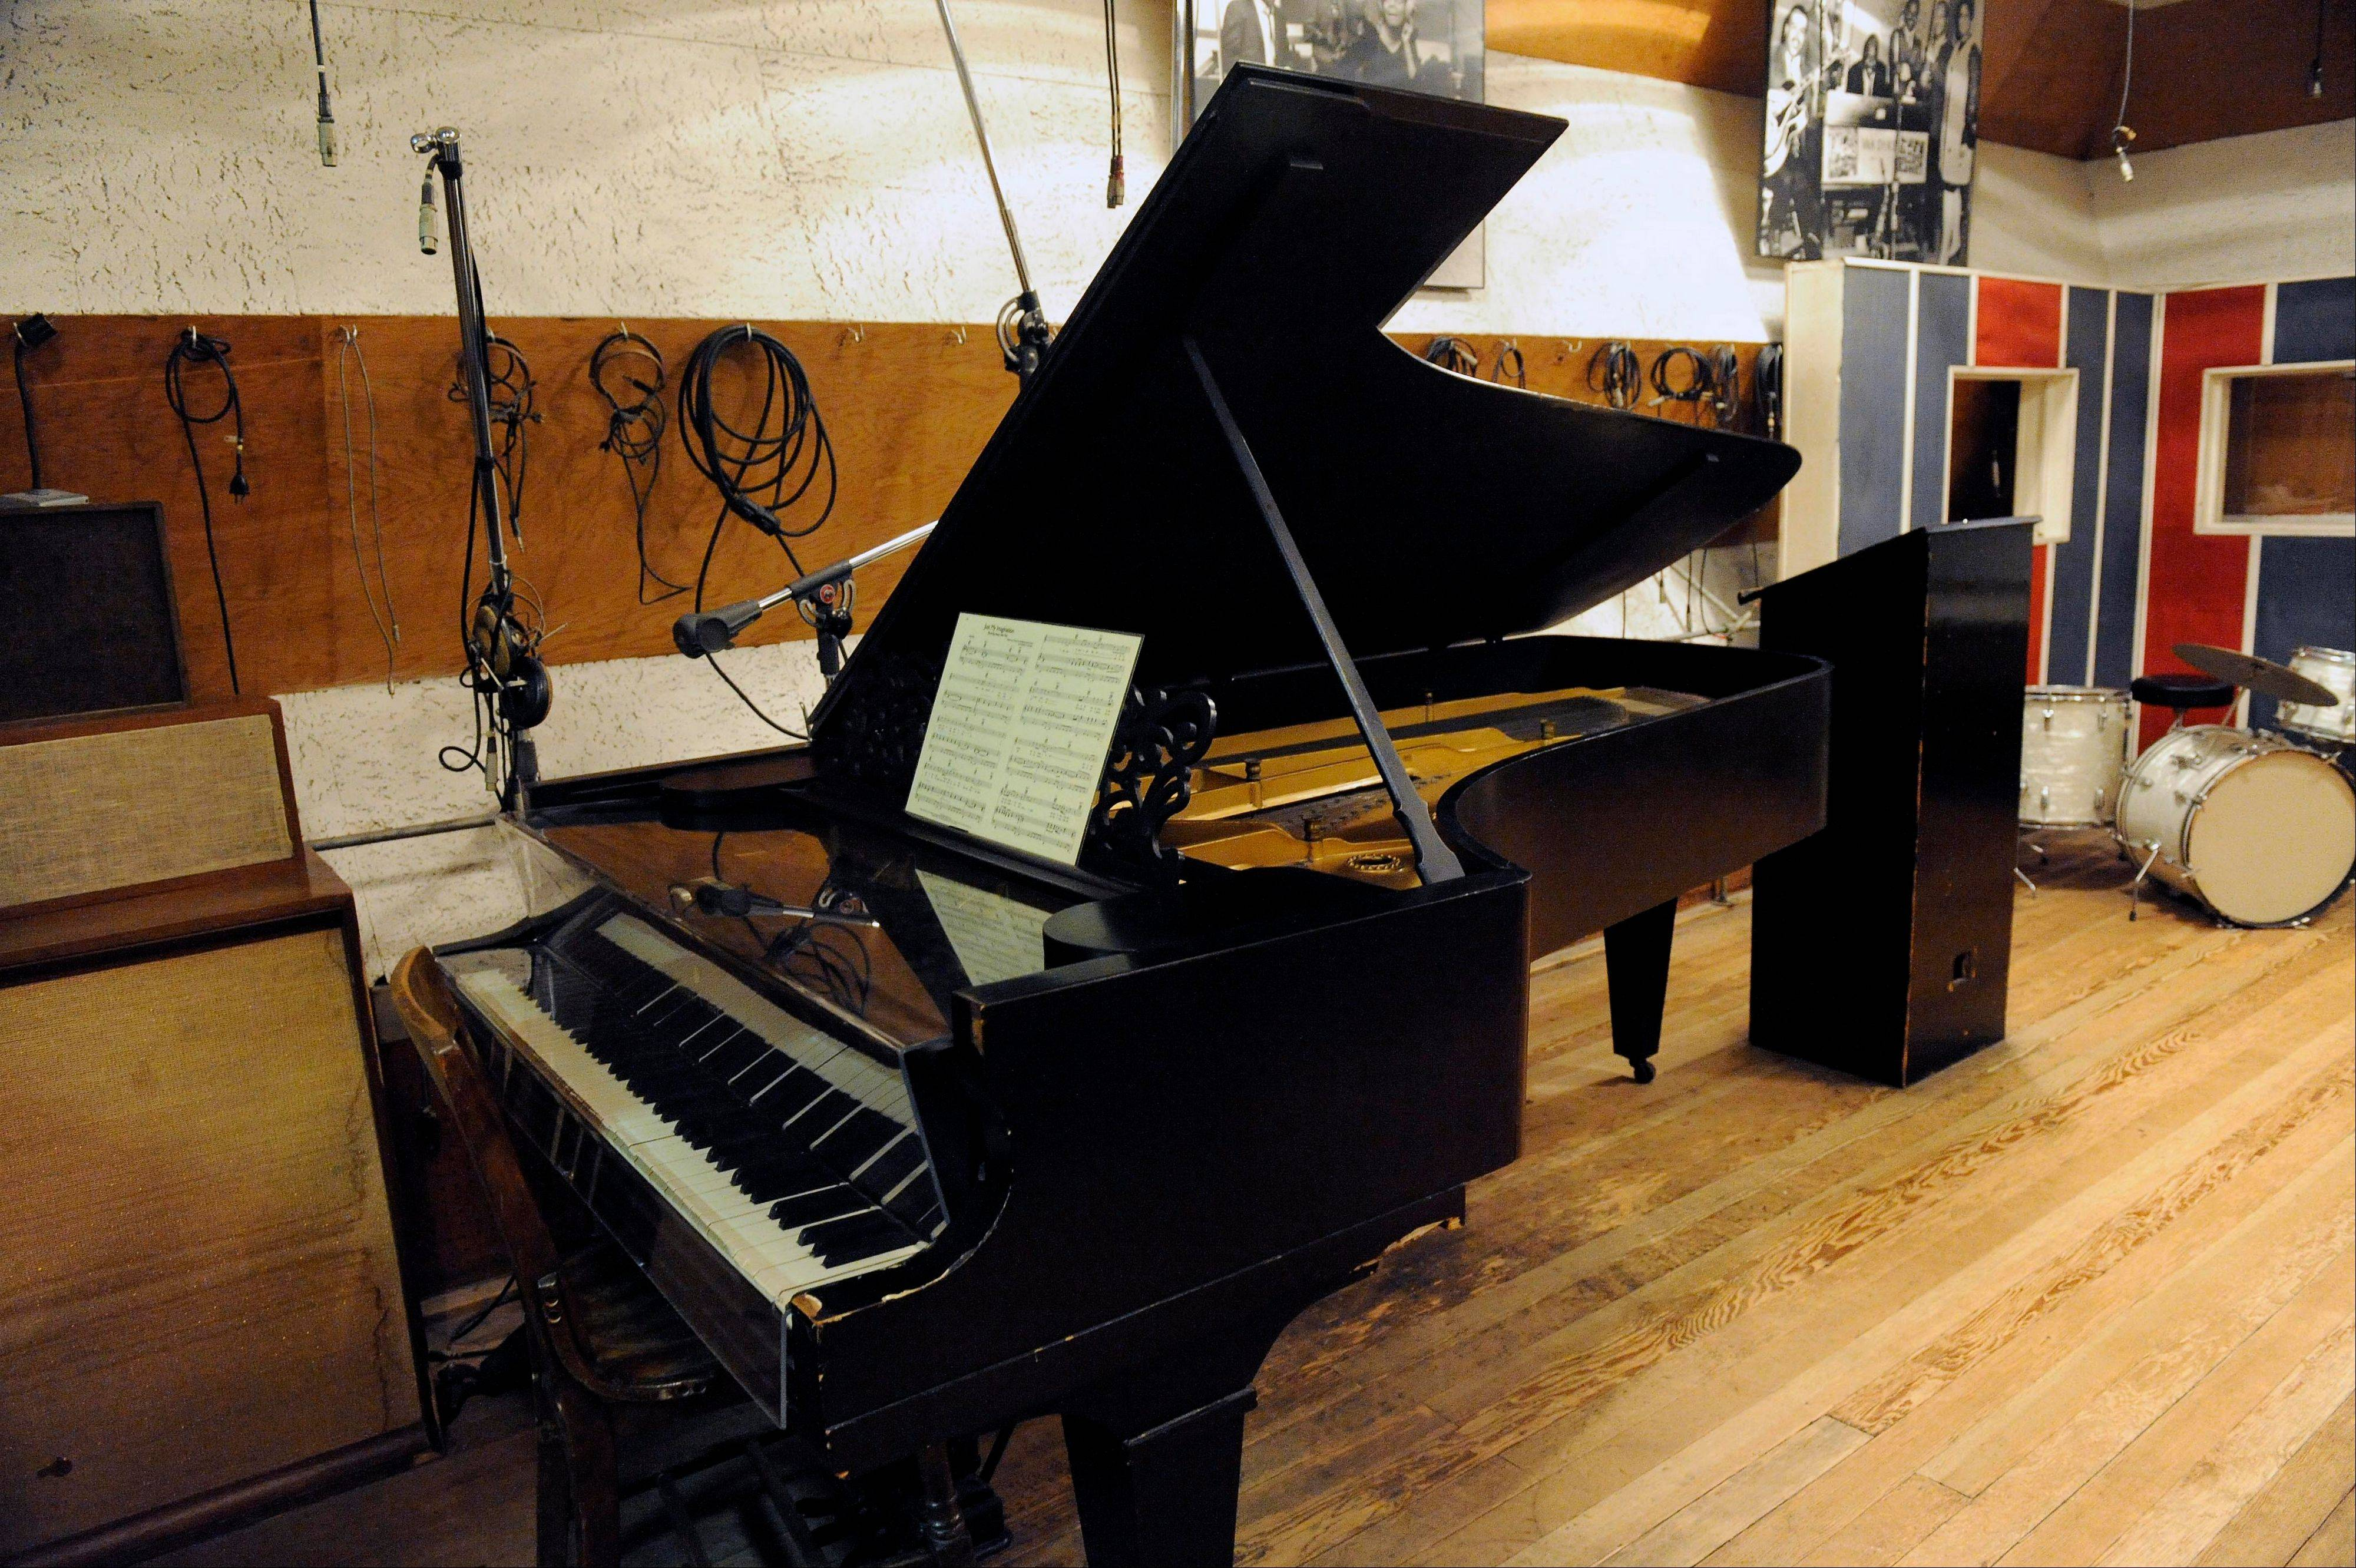 In this Oct. 31, 2011 photo, an 1877 Steinway grand piano used by Motown artists is seen in a Motown recording studio in Detroit. Now that an 1877 Steinway grand piano used by Motown artists has been restored, it's time for the historic instrument to be played. And who better to do that than ex-Beatle Paul McCartney, who orchestrated the piano's refurbishment, and Berry Gordy, the architect of the Motown music label.